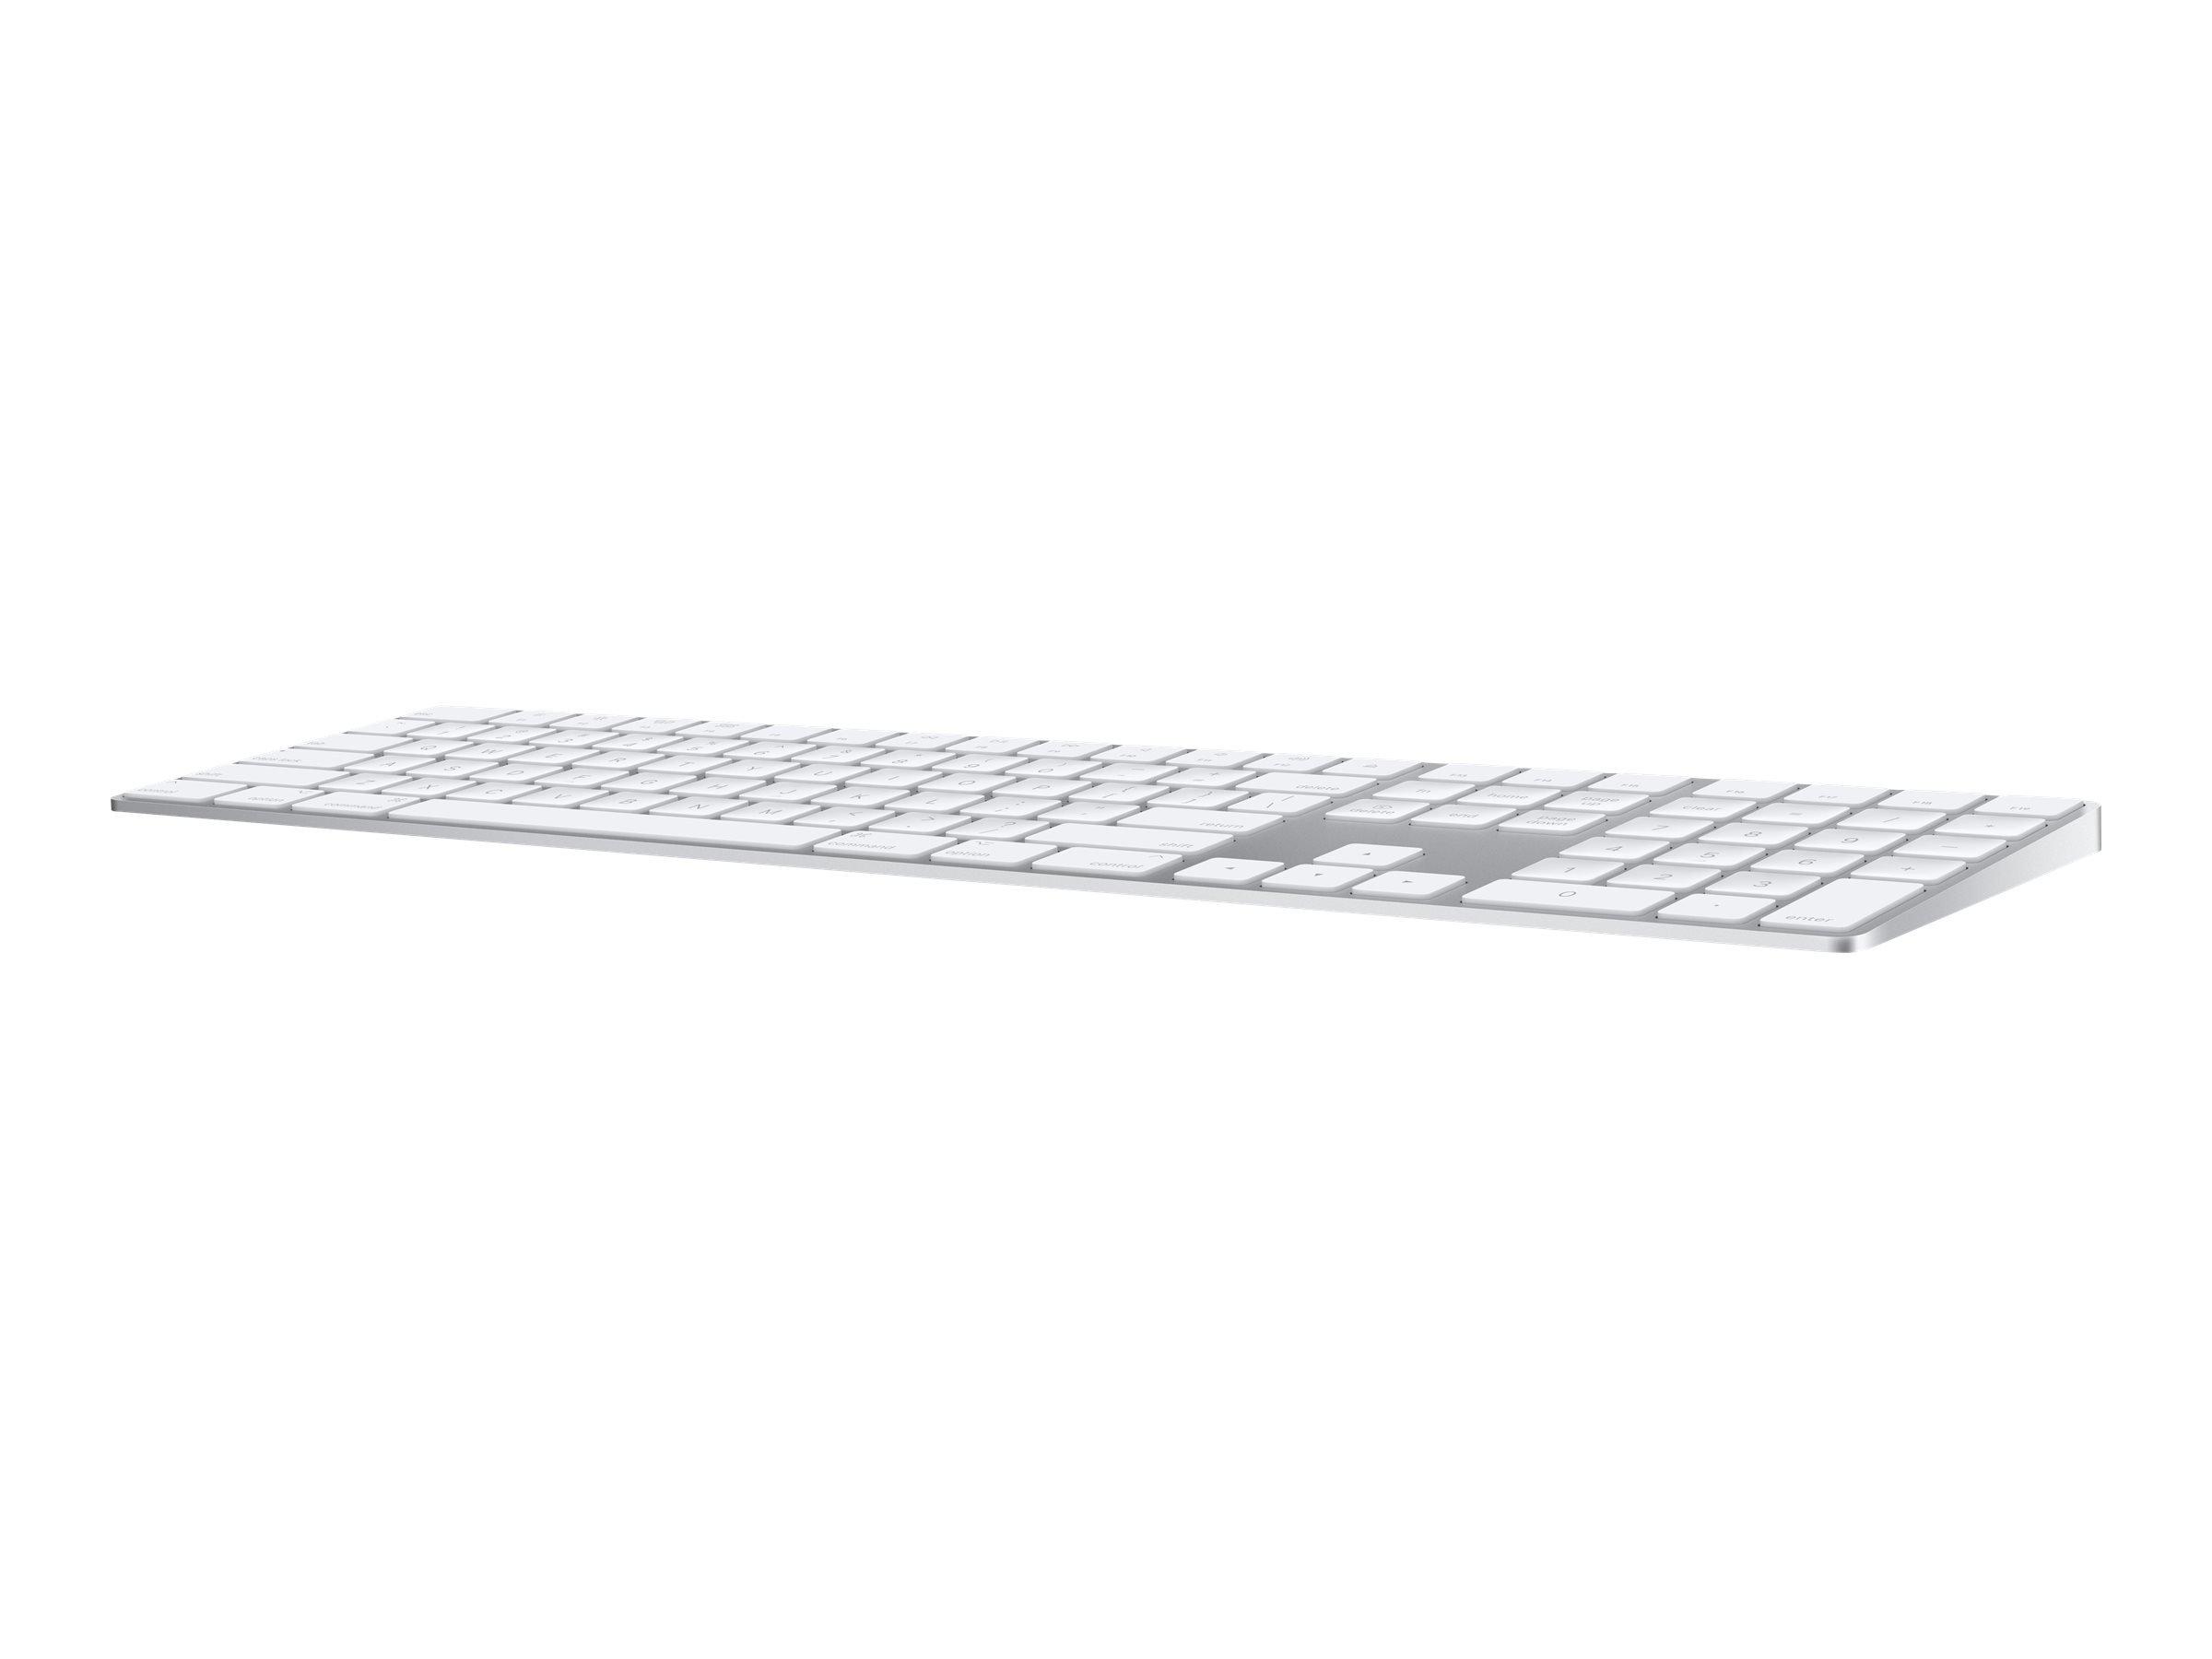 Apple Magic Keyboard with Numeric Keypad - keyboard - English - US - silver